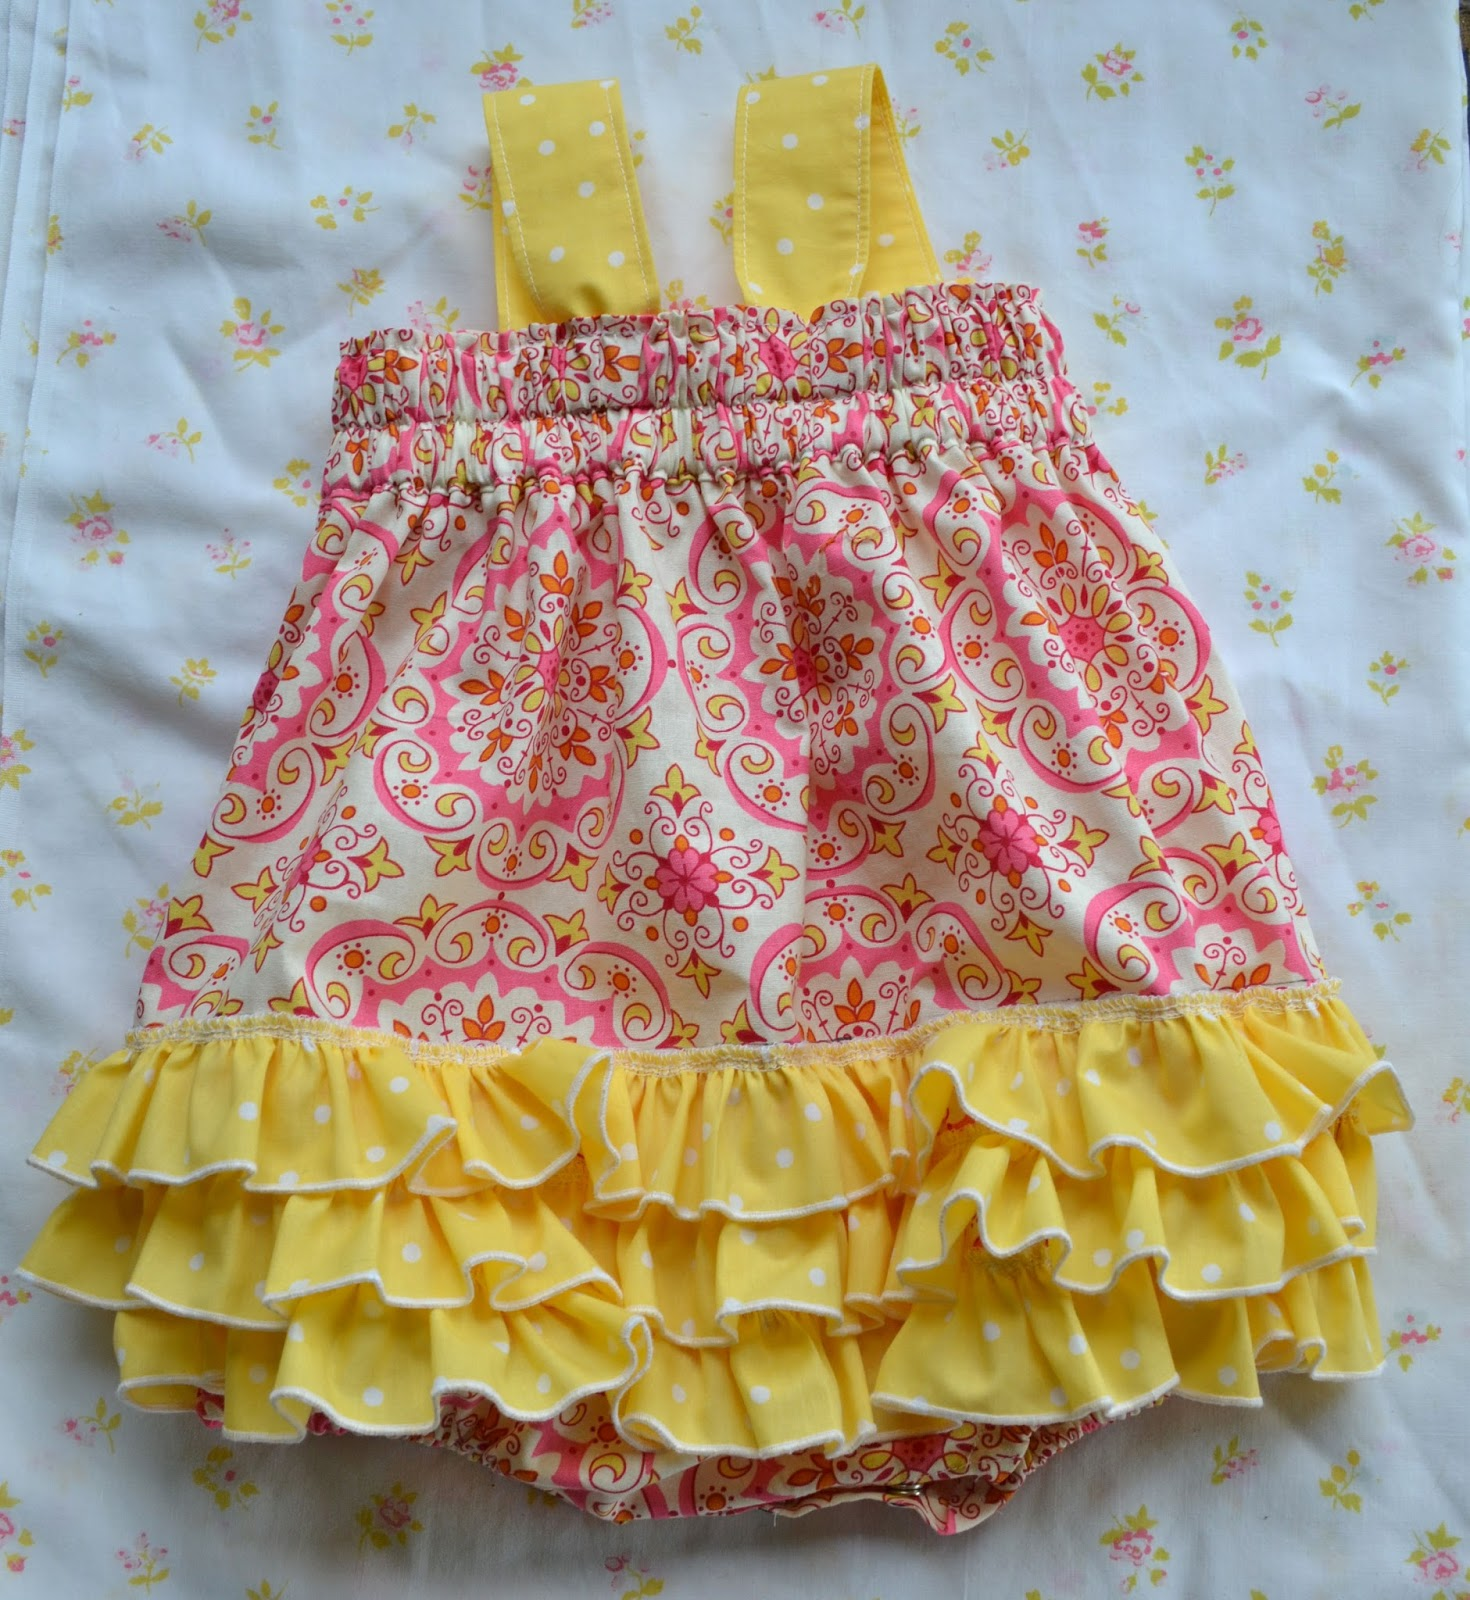 pink and yellow baby romper